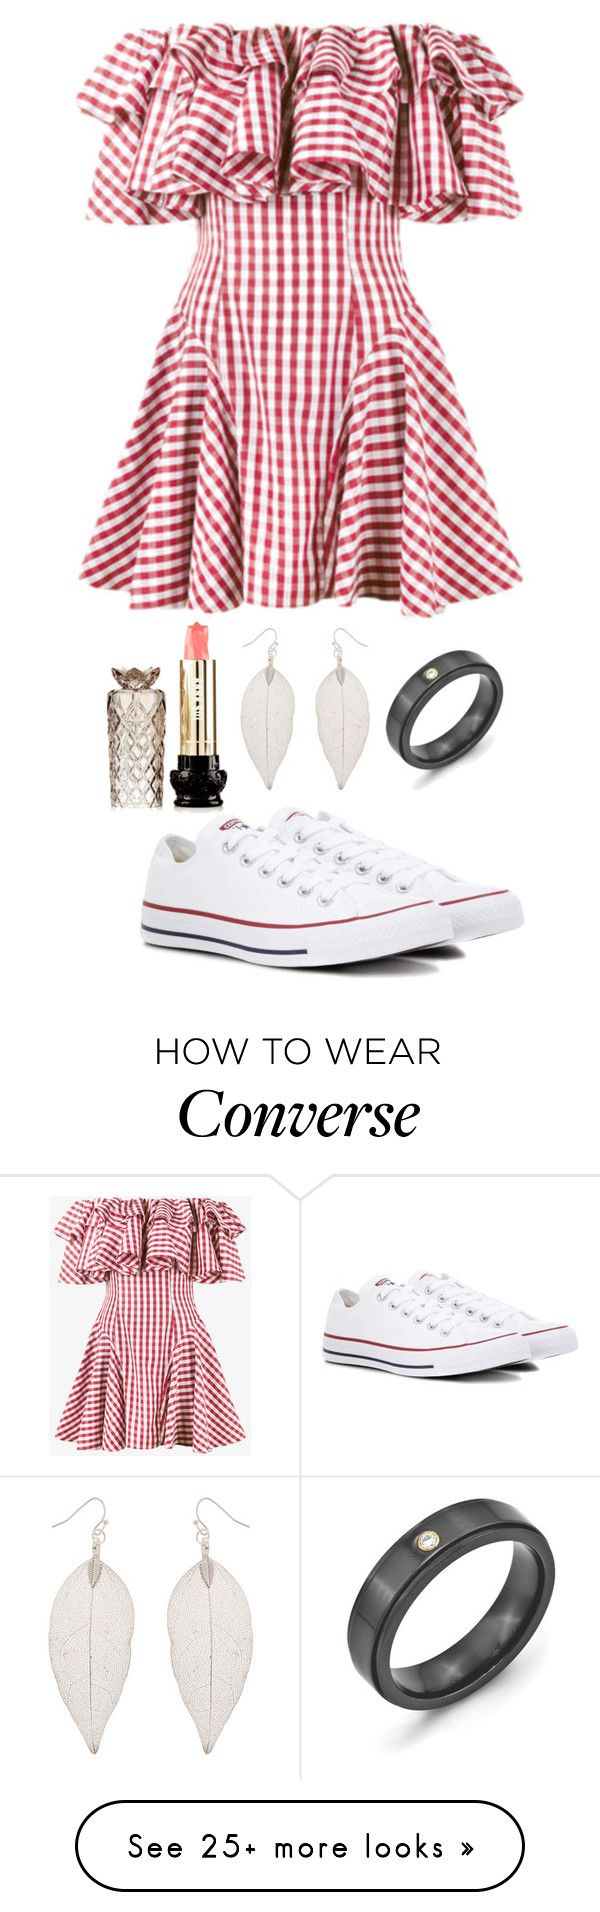 """Pick"" by puppydog28 on Polyvore featuring House of Holland, Accessorize, Kevin Jewelers, Converse and Anna Sui"